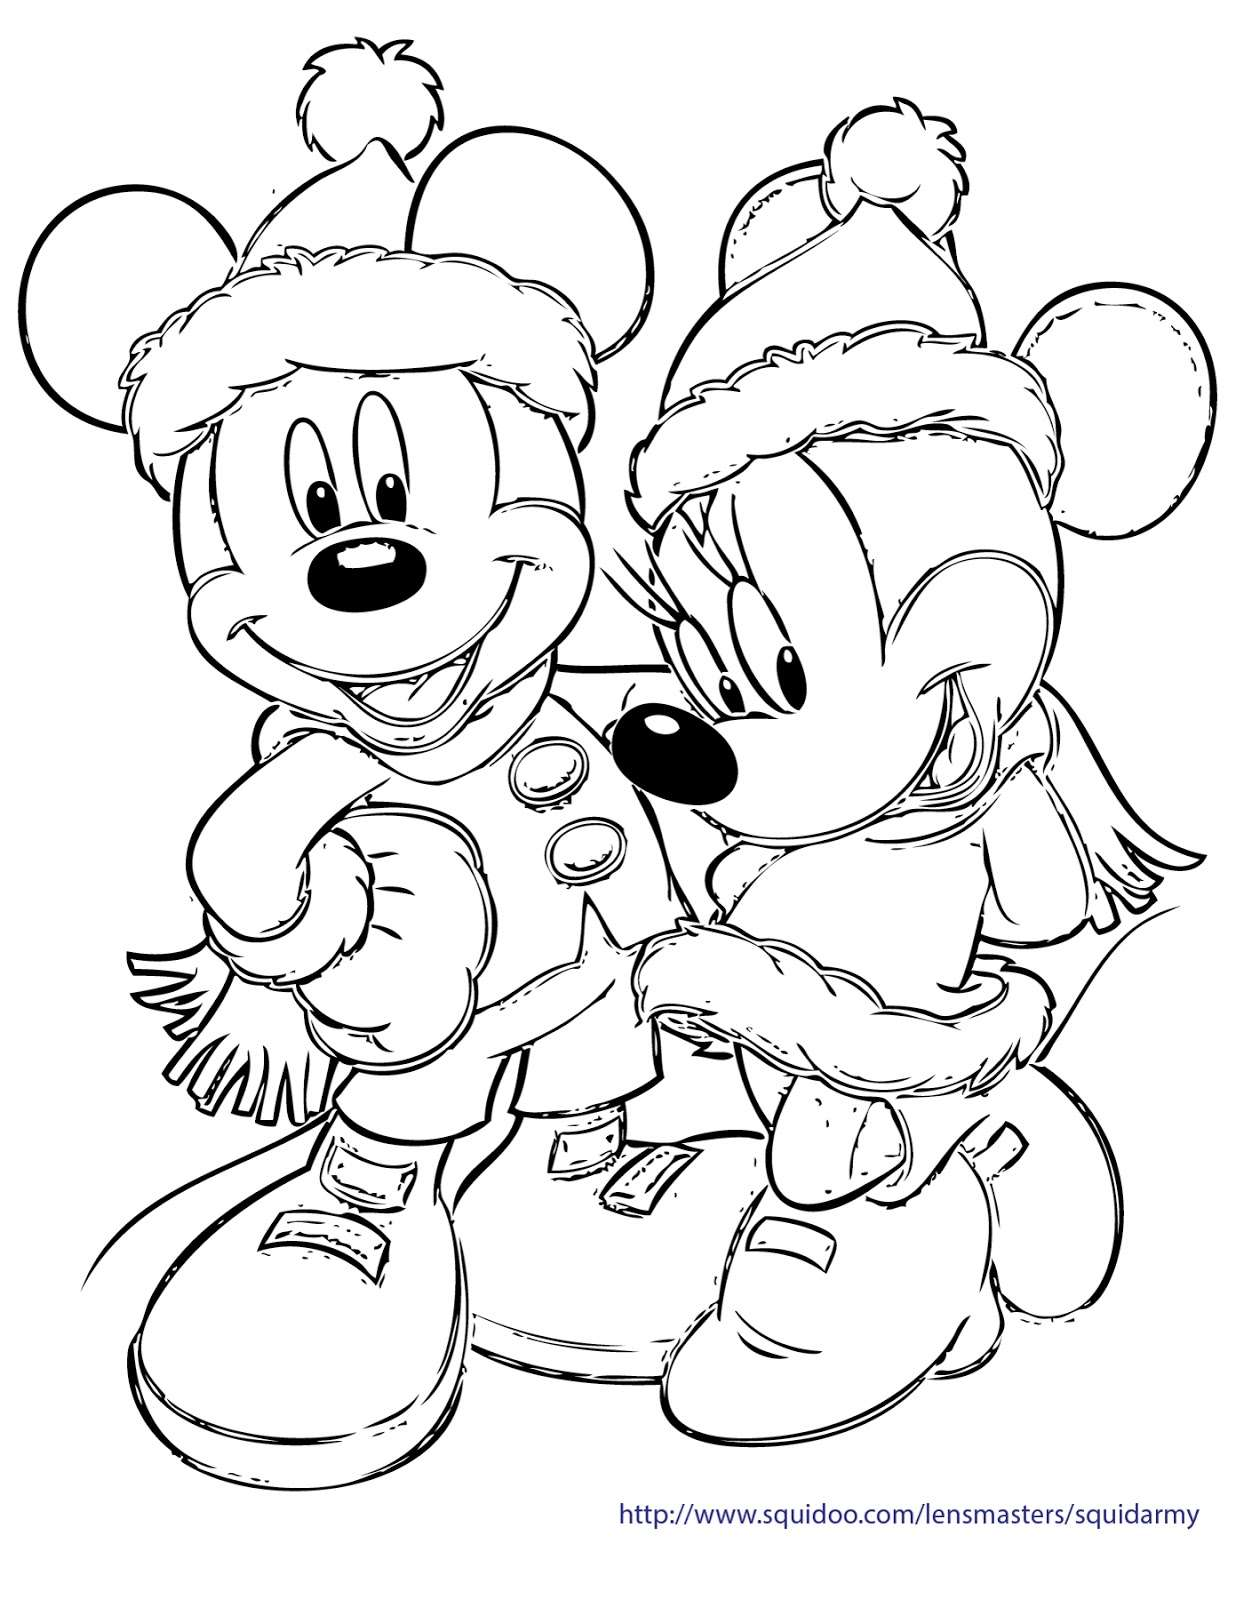 Free Printable Disney Frozen Christmas Coloring Pages With Princess